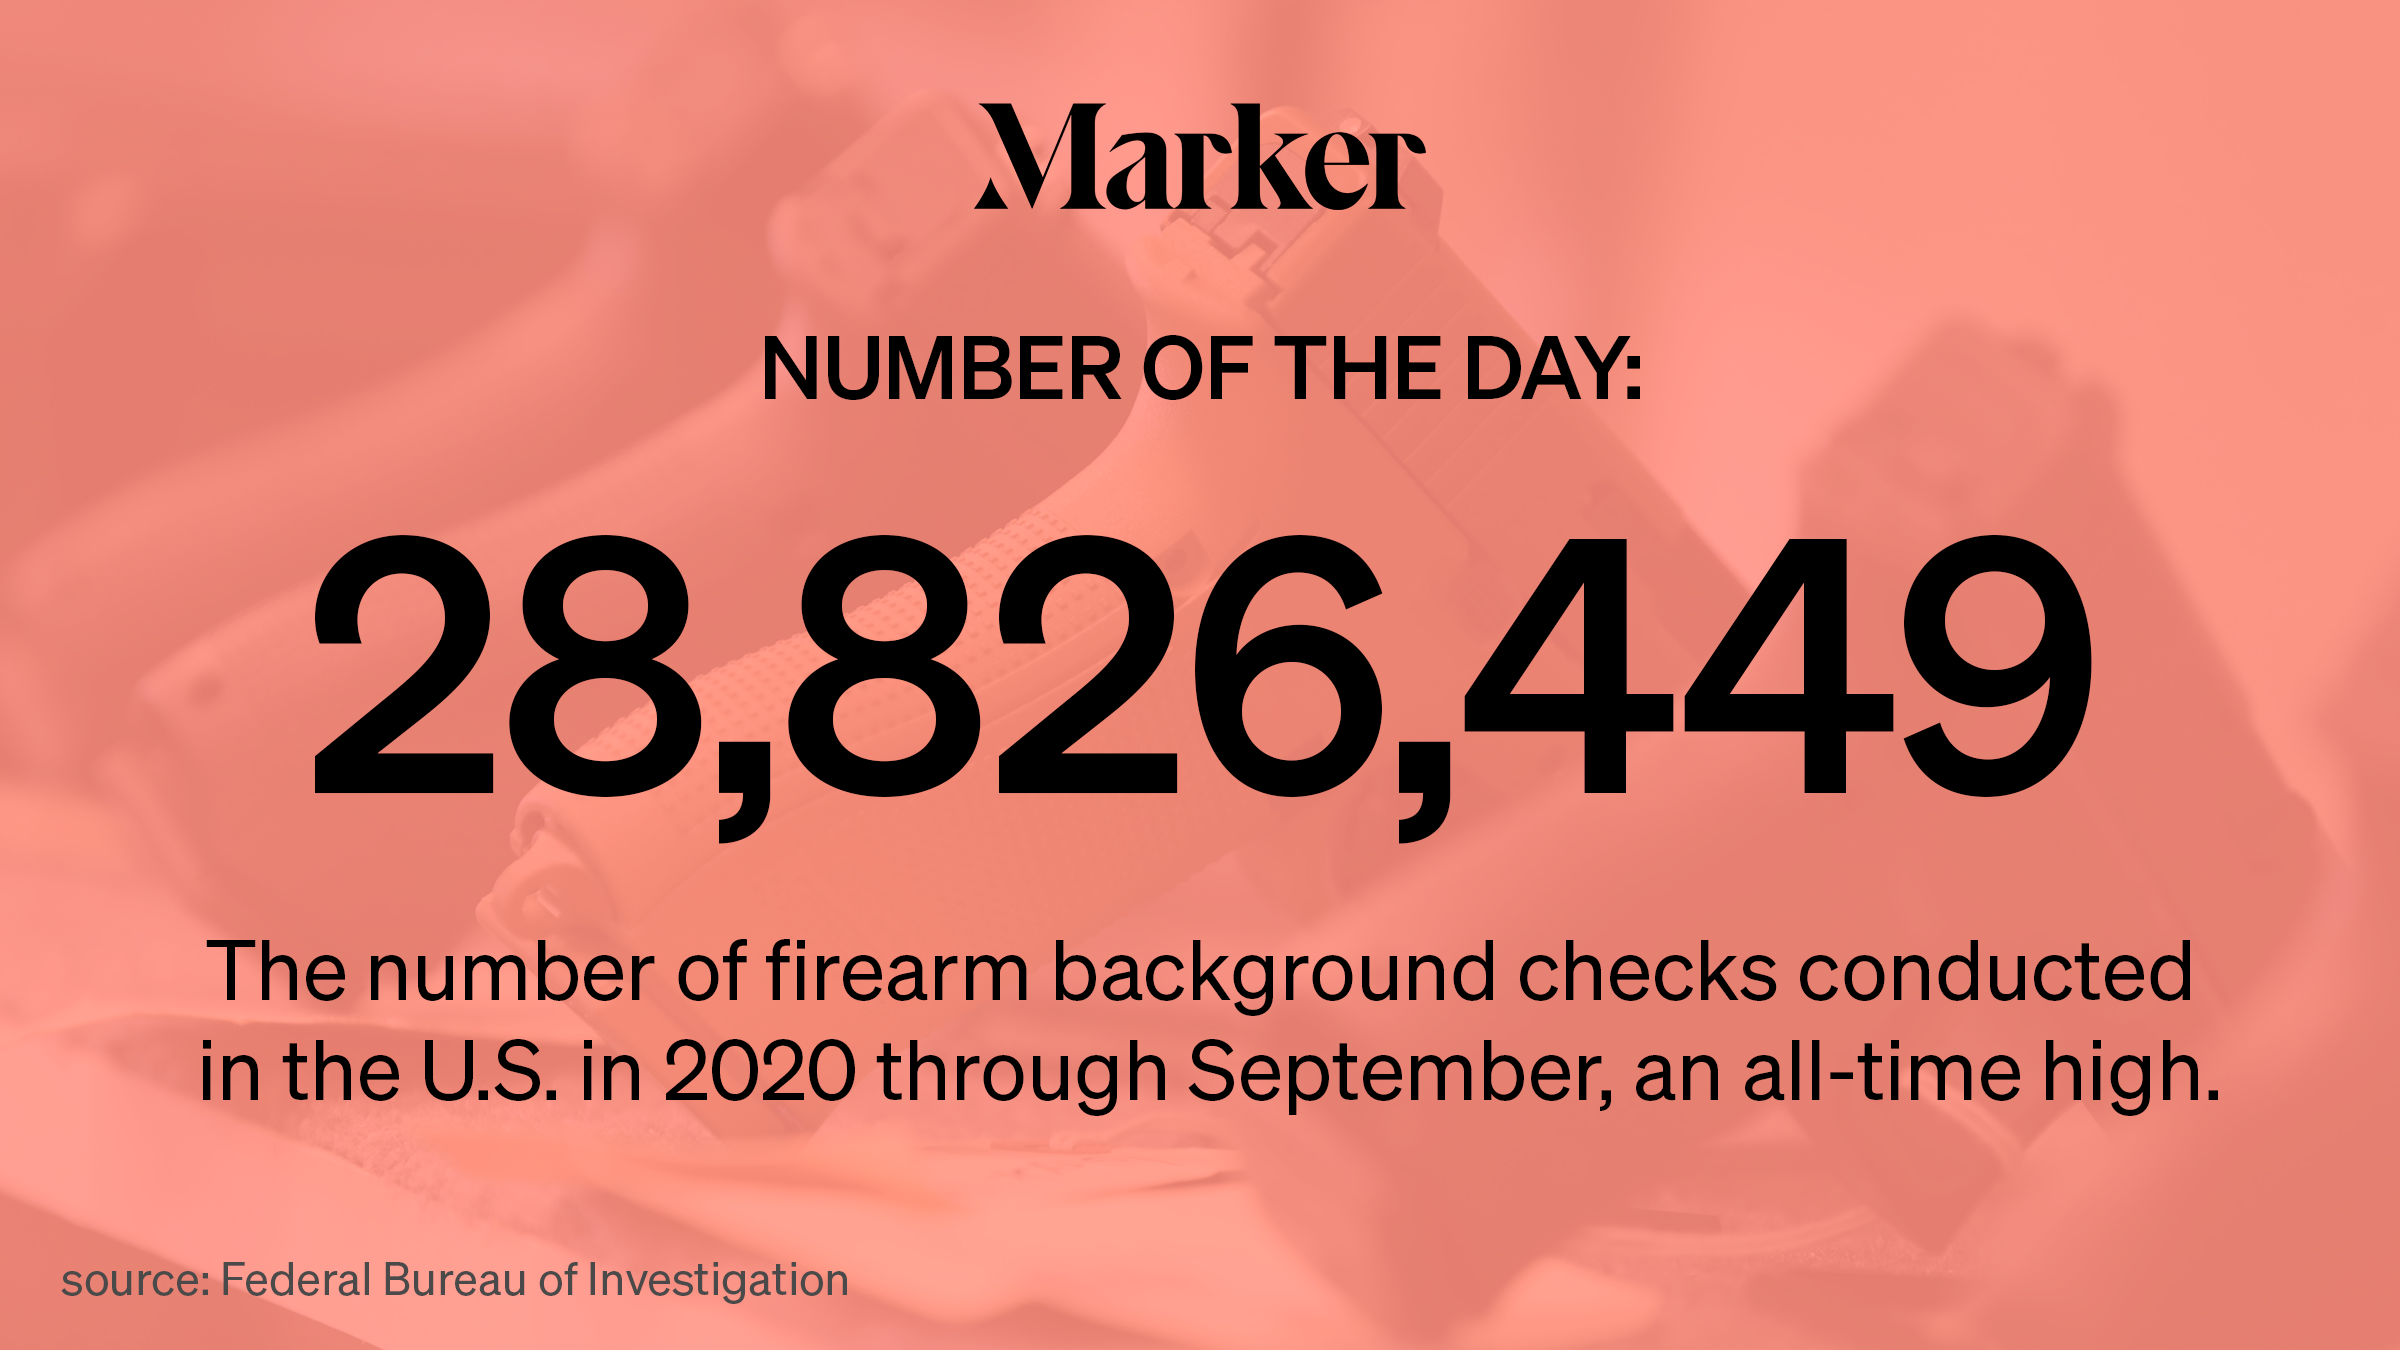 28,826,449 — The number of firearm background checks conducted in the U.S. in 2020 through September, an all-time high.